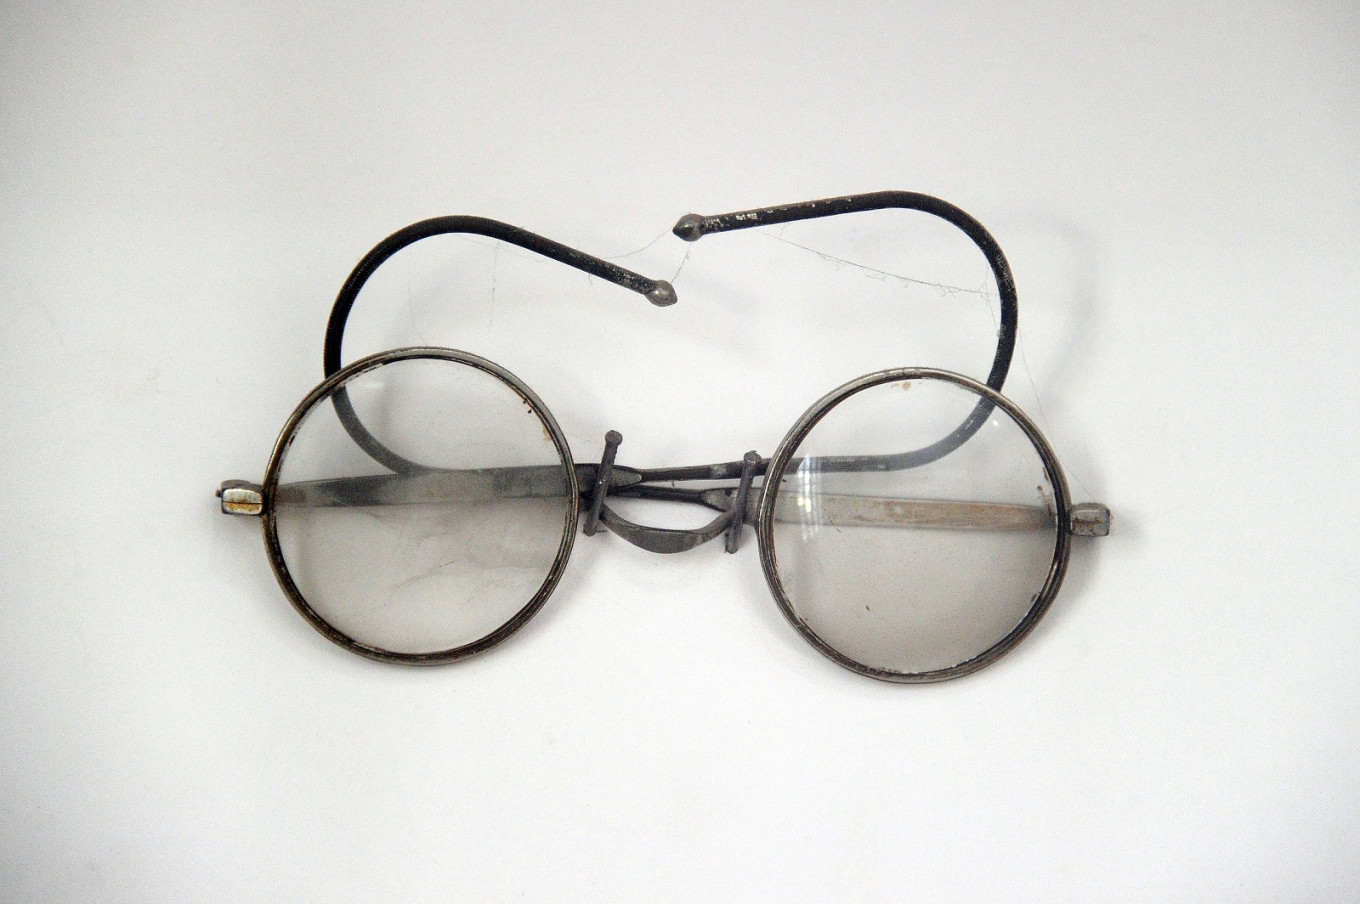 Gandhi's iconic glasses go on sale in UK